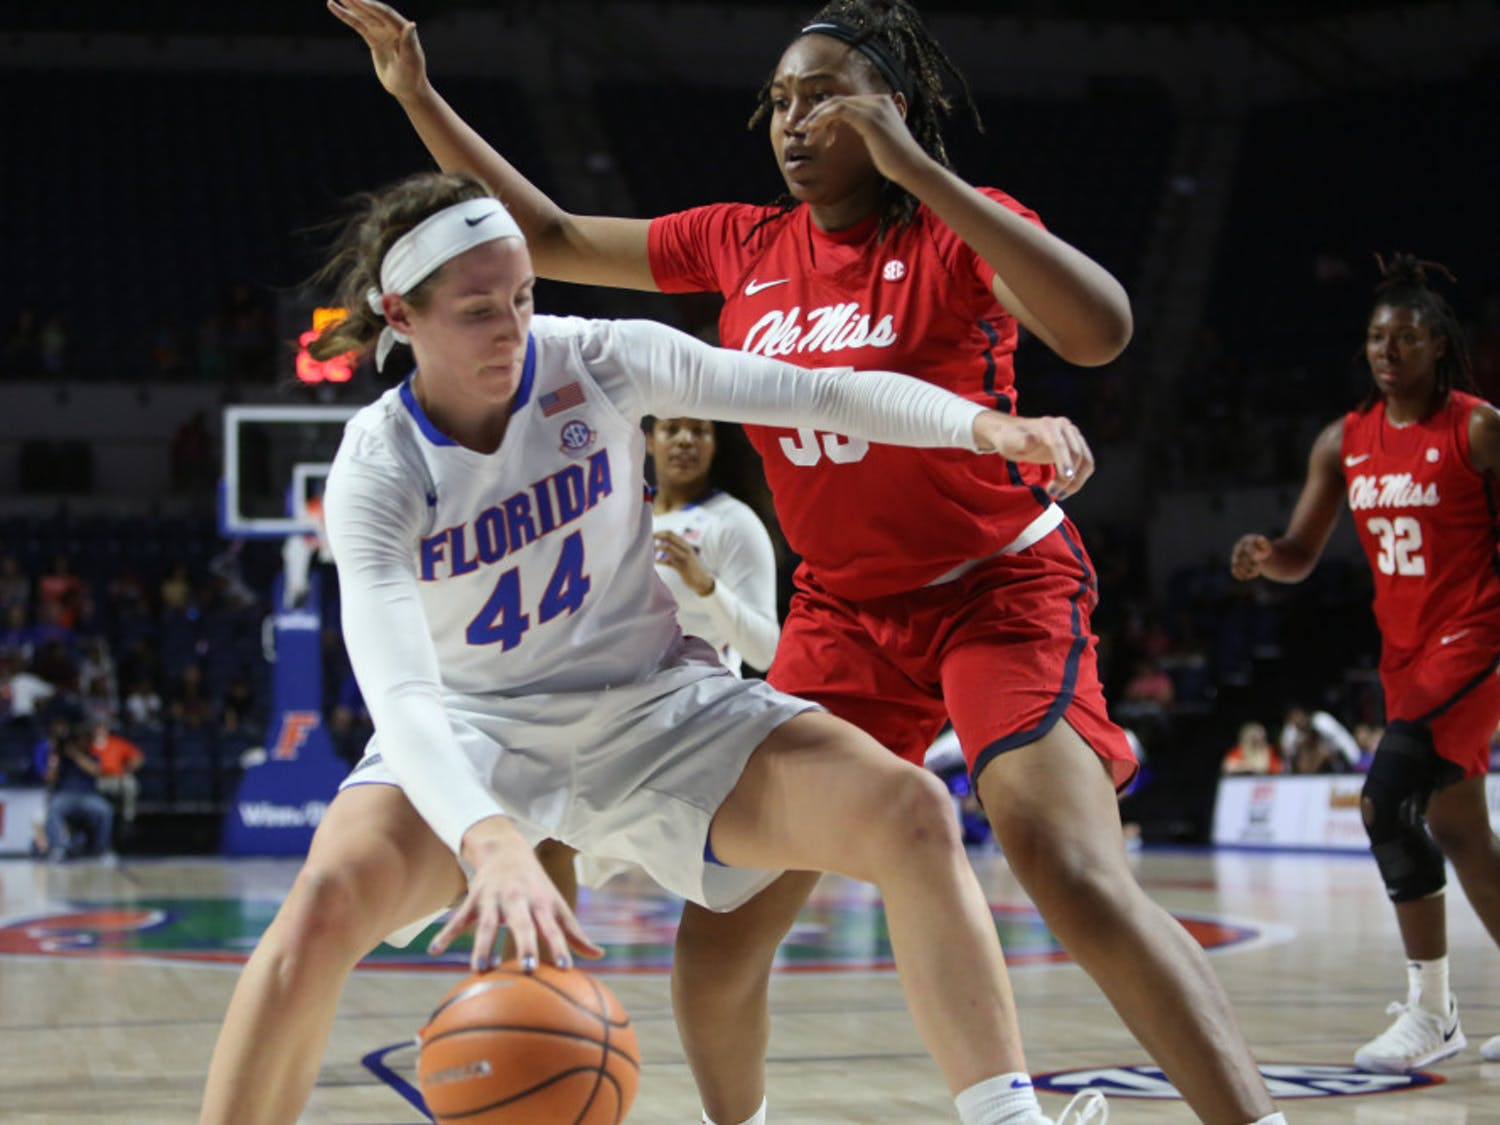 Forward Haley Lorenzen scored 18 points and recorded her 16th career double-dboule.